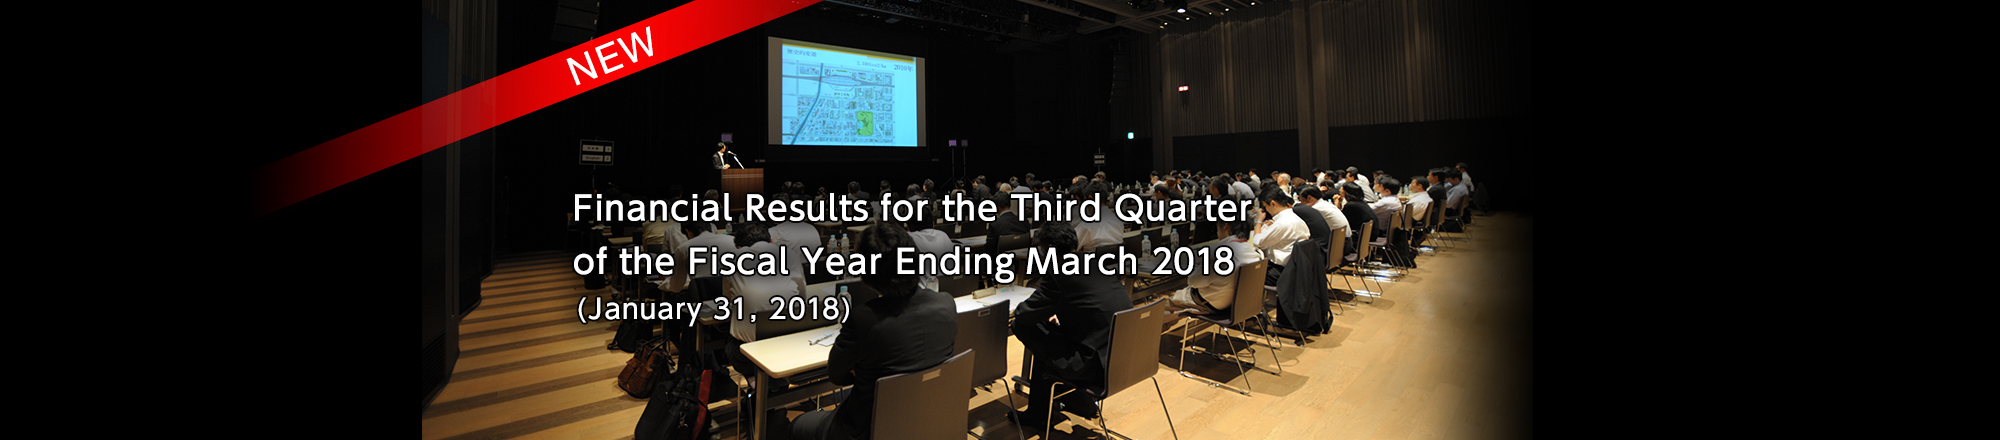 Financial Results for the Third Quarter of the Fiscal Year Ending March 2018 (January 31, 2018)